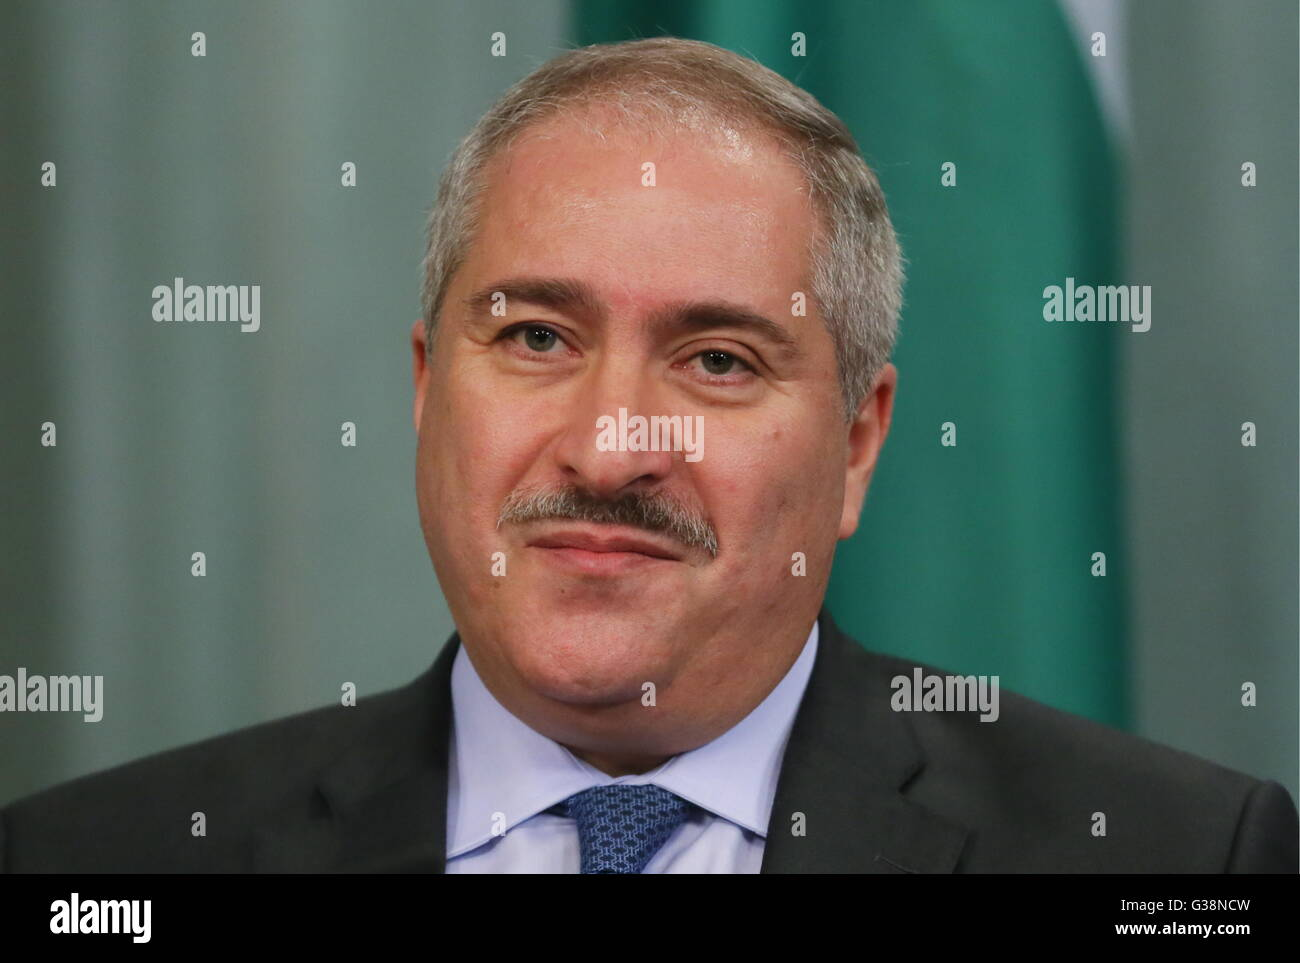 Moscow, Russia. 9th June, 2016. Jordan's minister of foreign affairs and expatriate affairs Naser Joudeh at a news Stock Photo